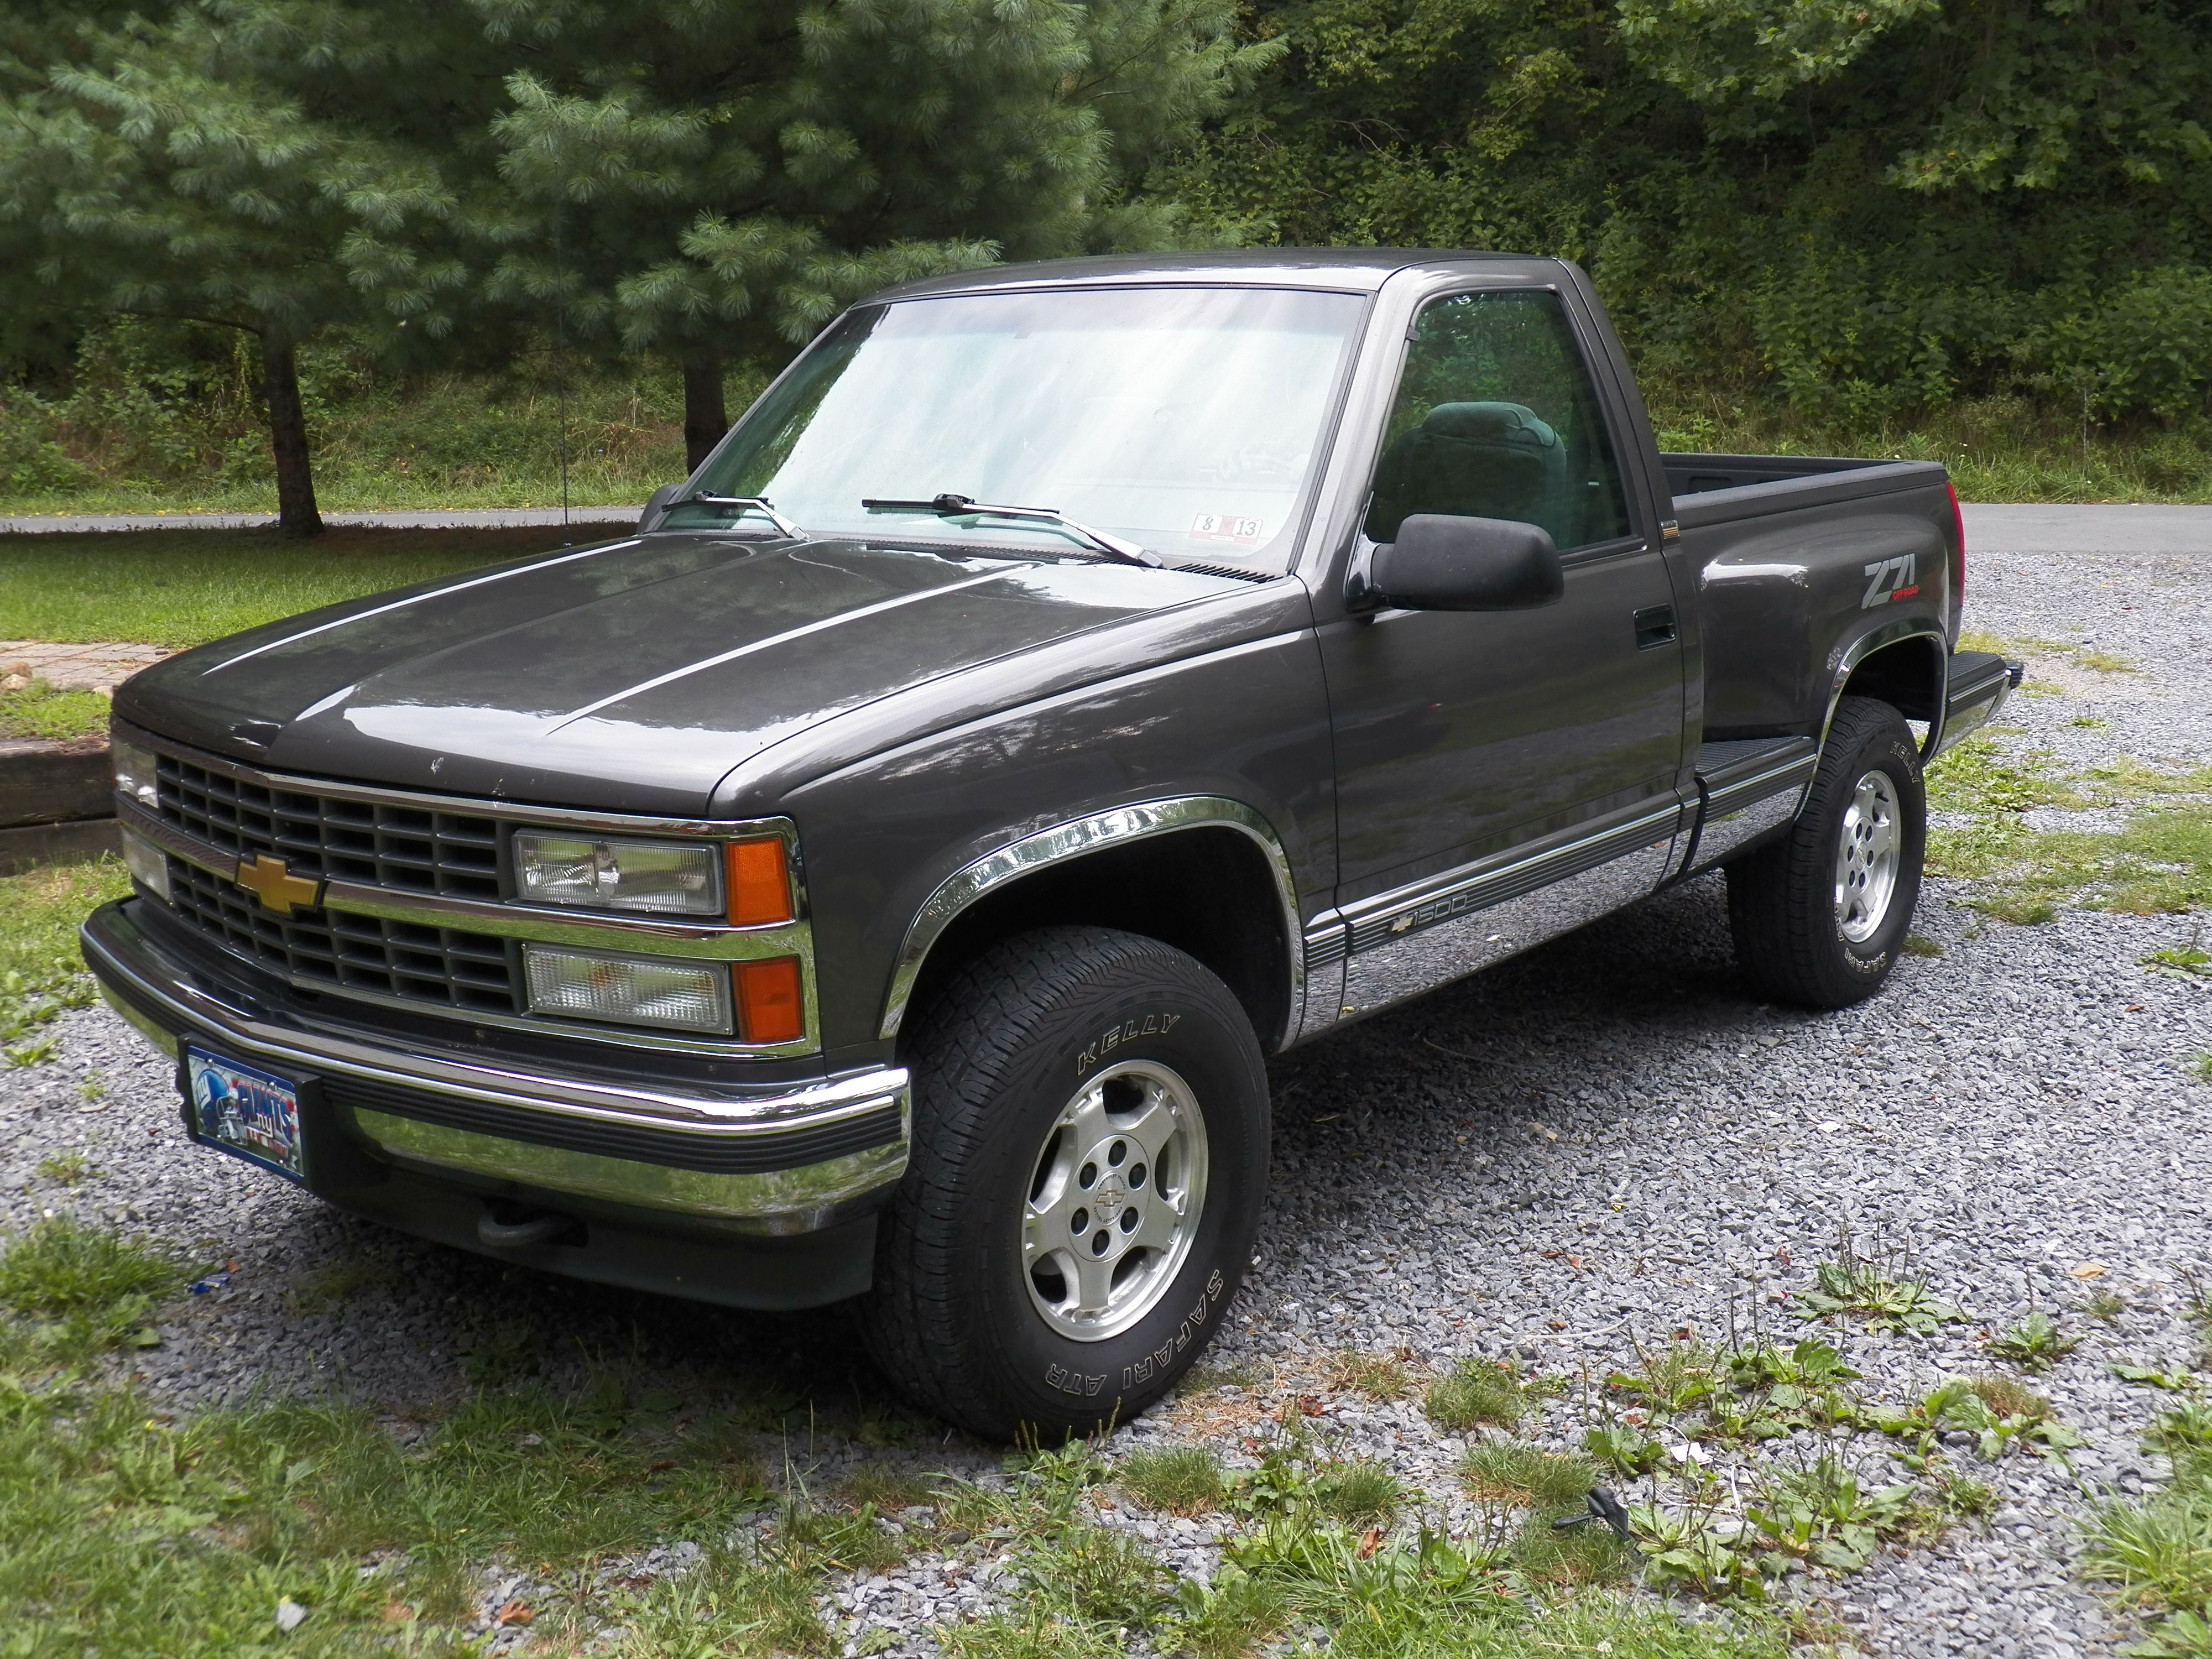 my pretty baby 1994 chevy stepside truck 350 z71 gunmetal grey i ve wanted one of these since i was a teen bought this one about 3 weeks ago 3 [ 4000 x 3000 Pixel ]